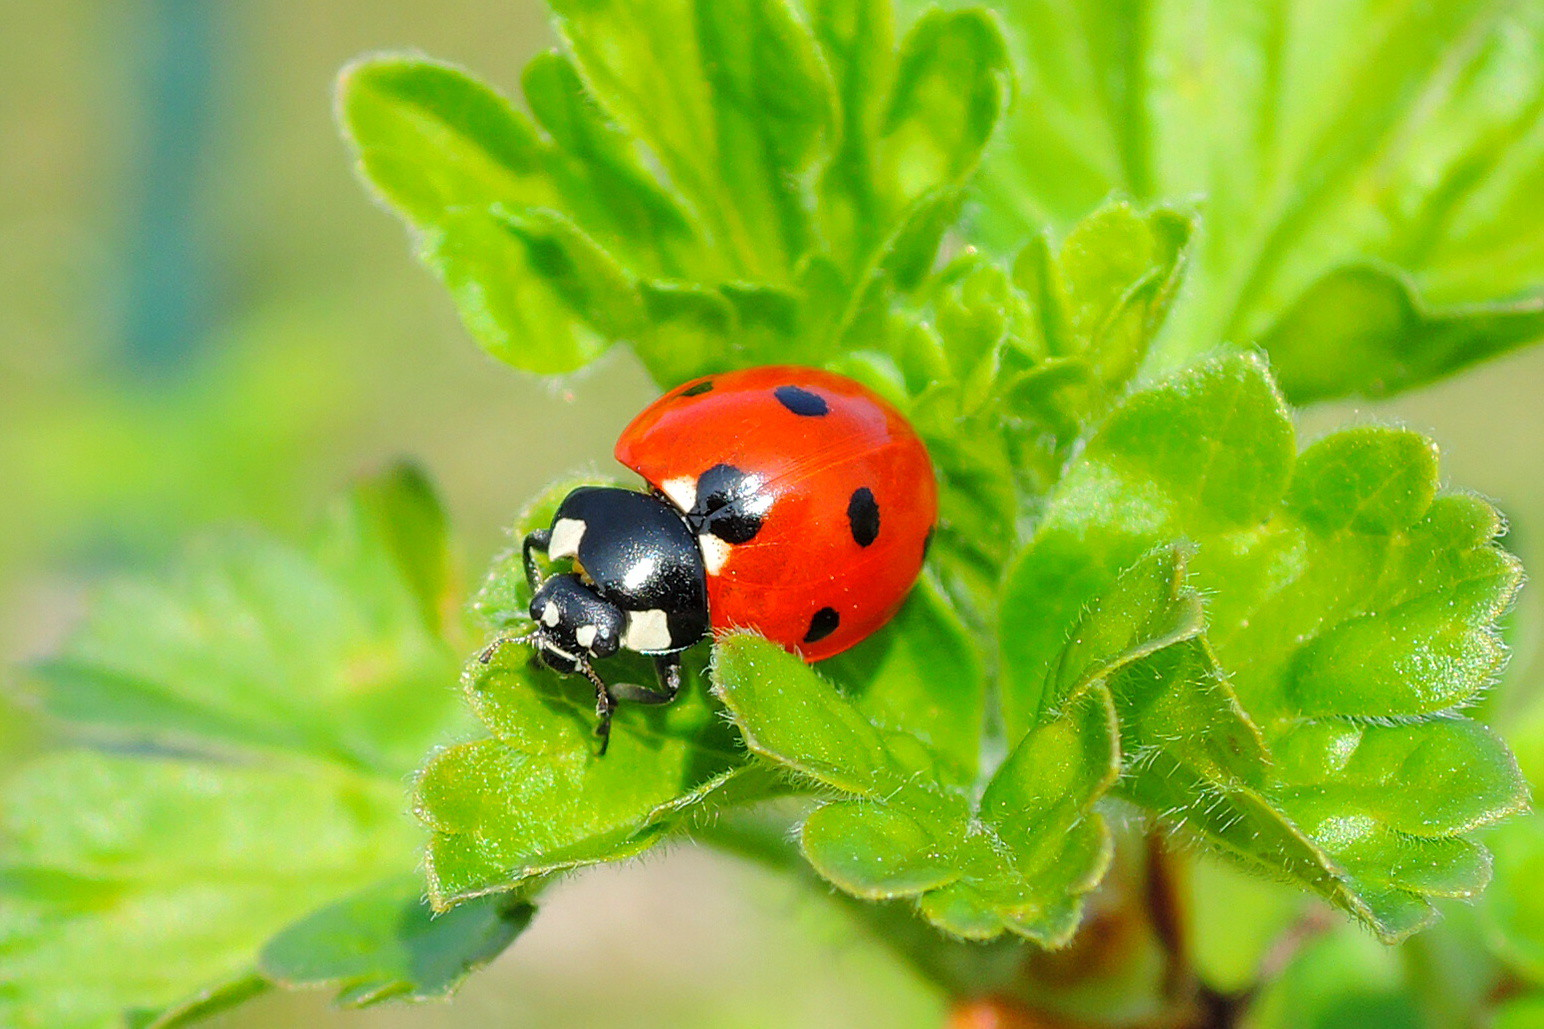 THE HISTORY OF THE LADYBUG